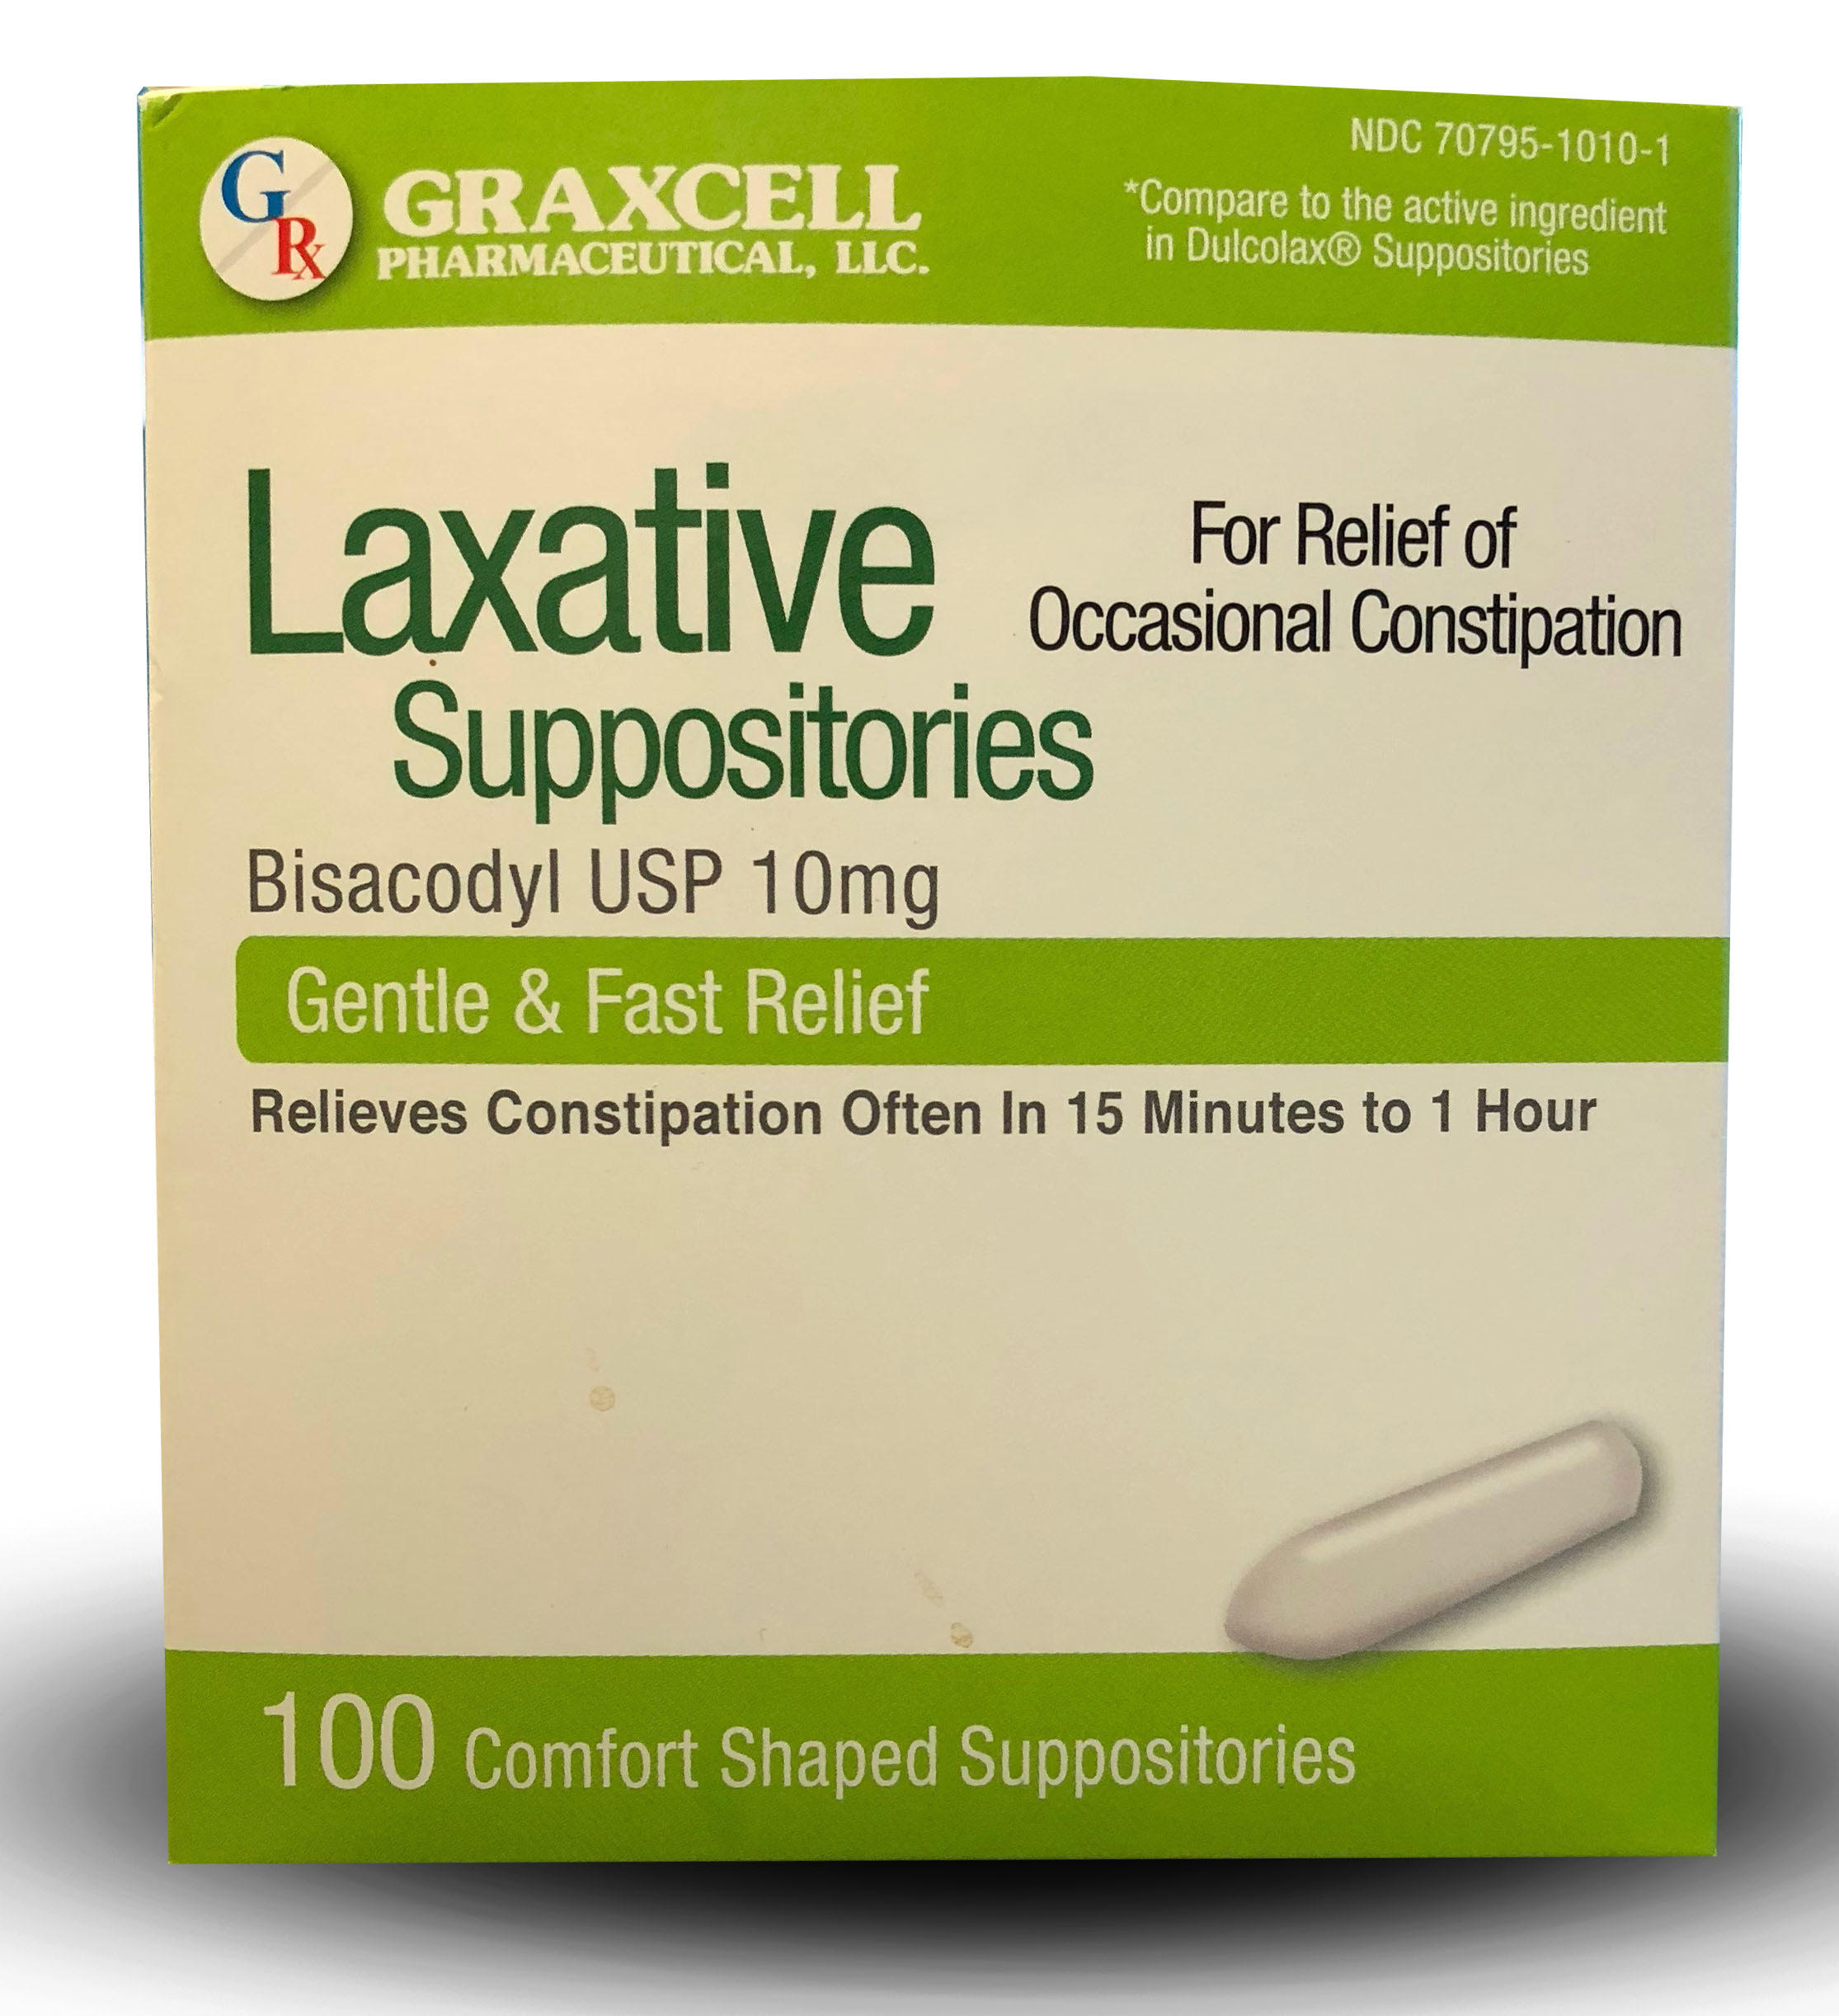 LAXATIVE SUPPOSITORIES BISACODYL USP 10 MG 100